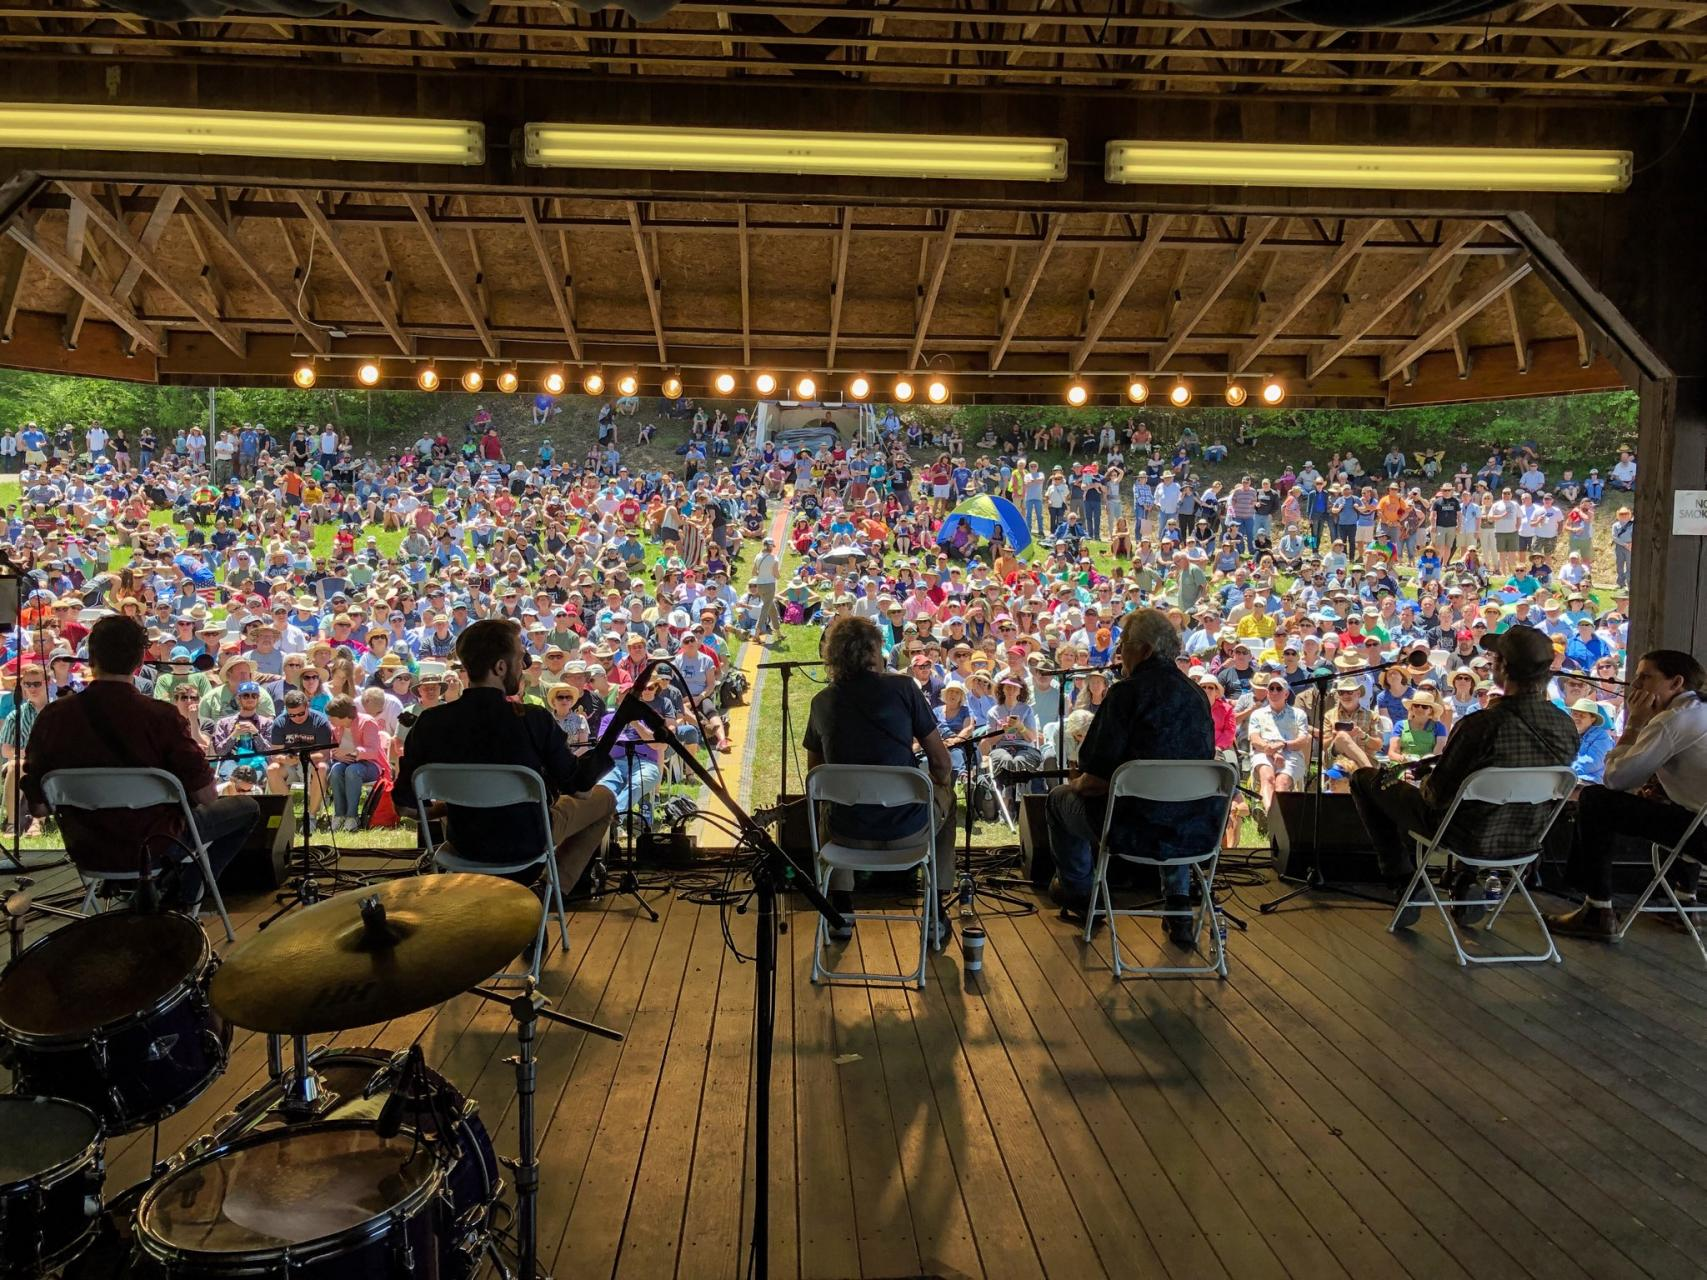 A behind the scenes look at Mando Mania, an annual MerleFest set curated by 2018 N.C. Heritage Awardee Tony Williamson and Sam Bush. Photo by Karen Bloom.